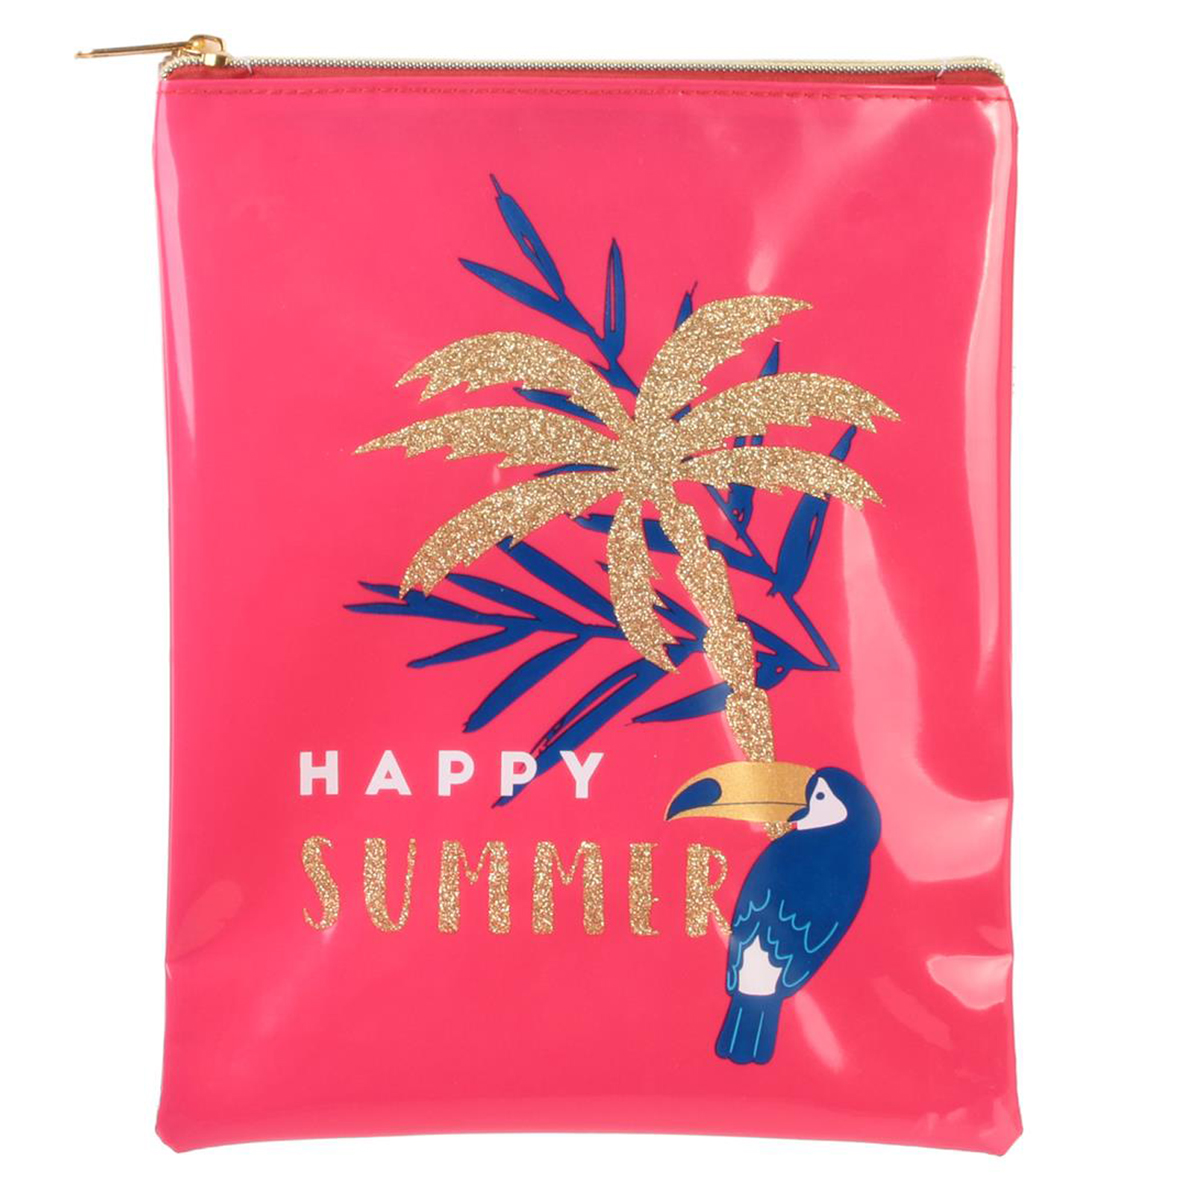 Pochette maillot de bain \'Tropical\' rose (Happy summer) - 23x18 cm - [Q7775]